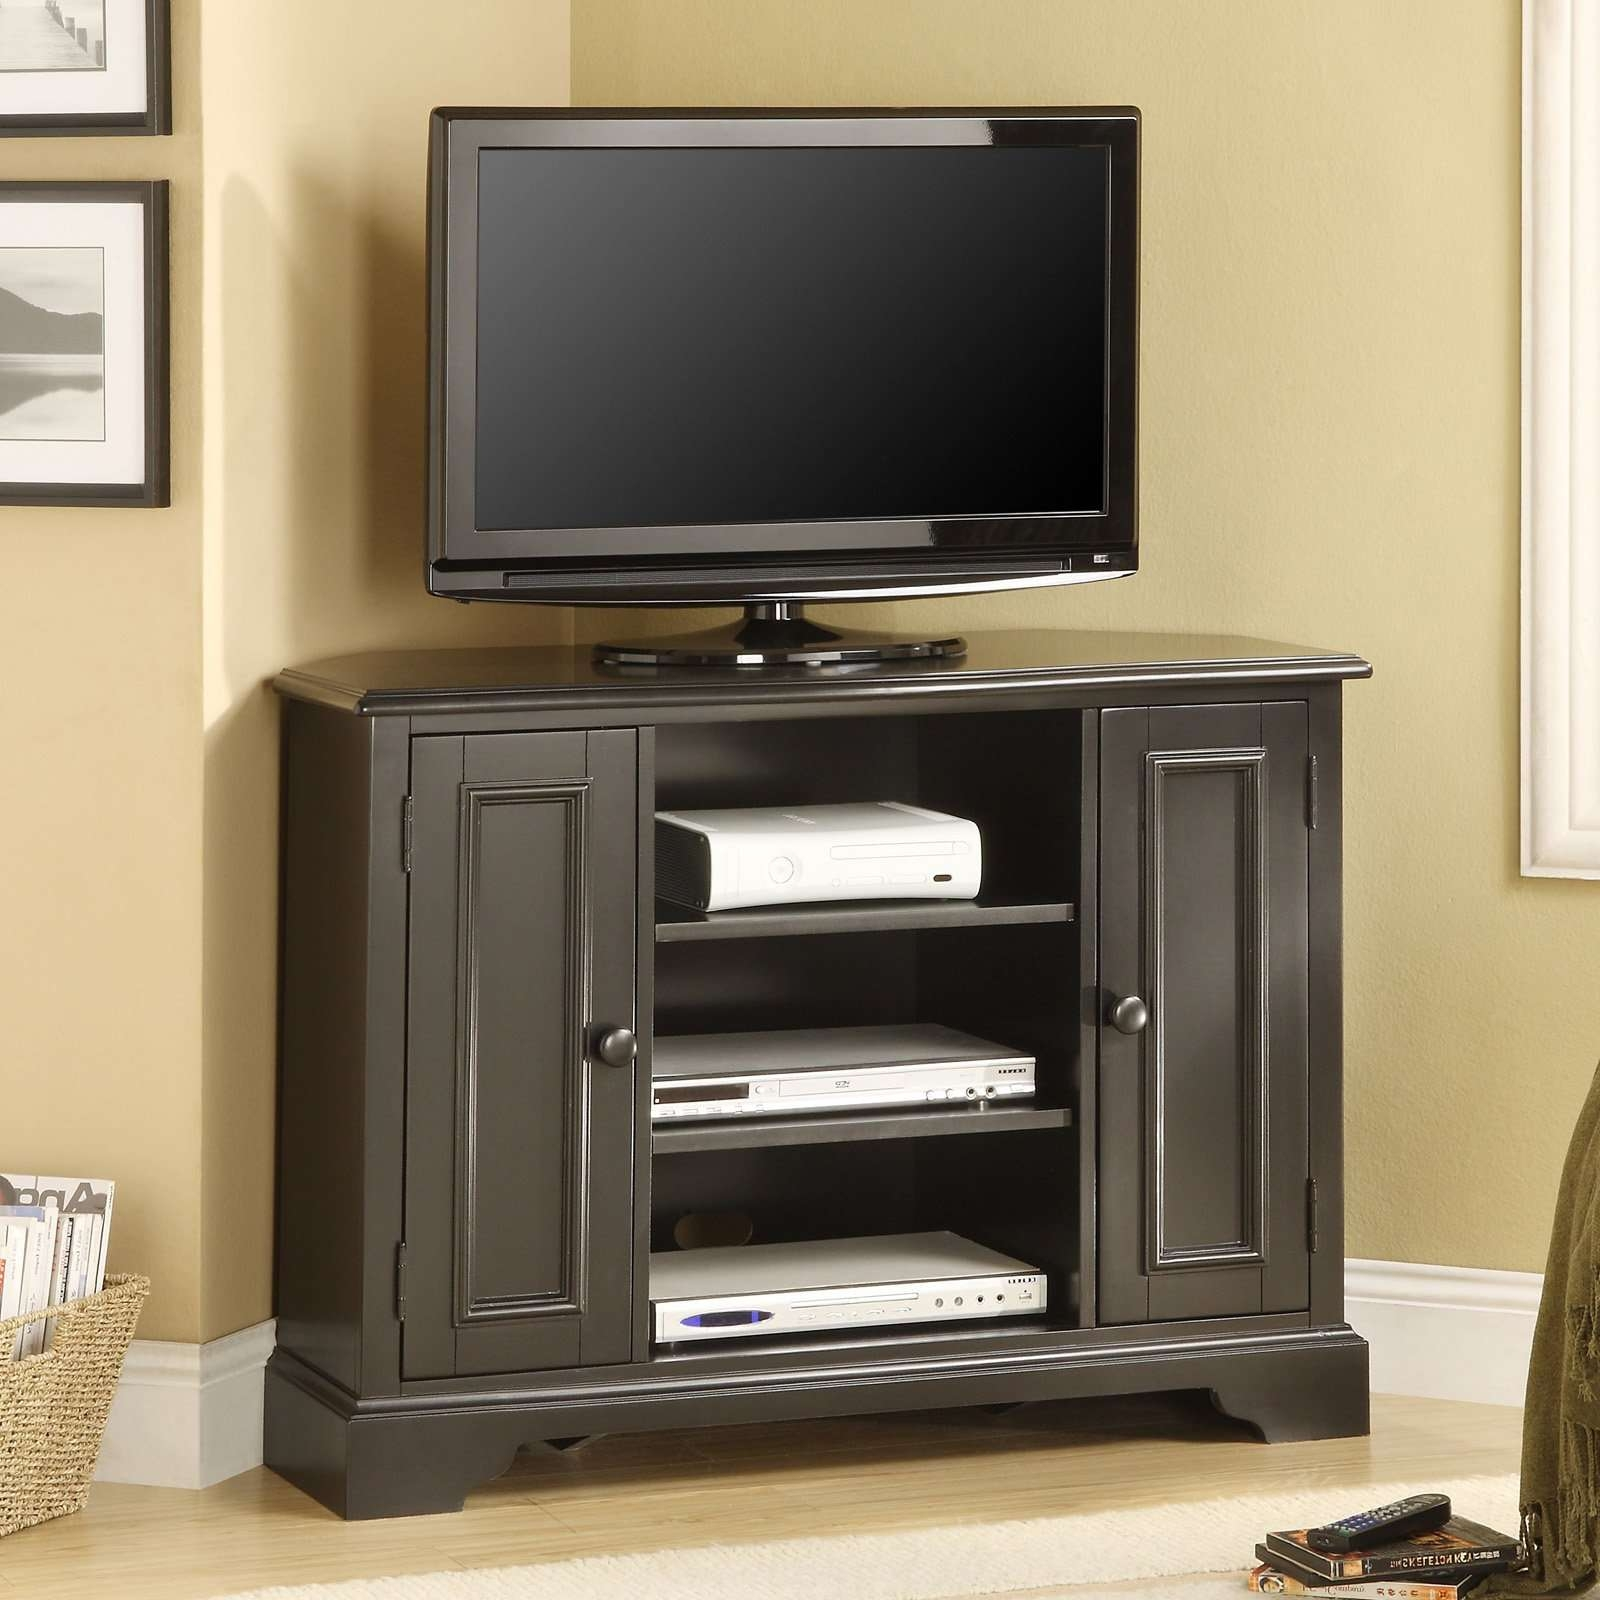 Black Melamine Finished Solid Wood Tall Corner Tv Stand For In Black Wood Corner Tv Stands (View 4 of 15)